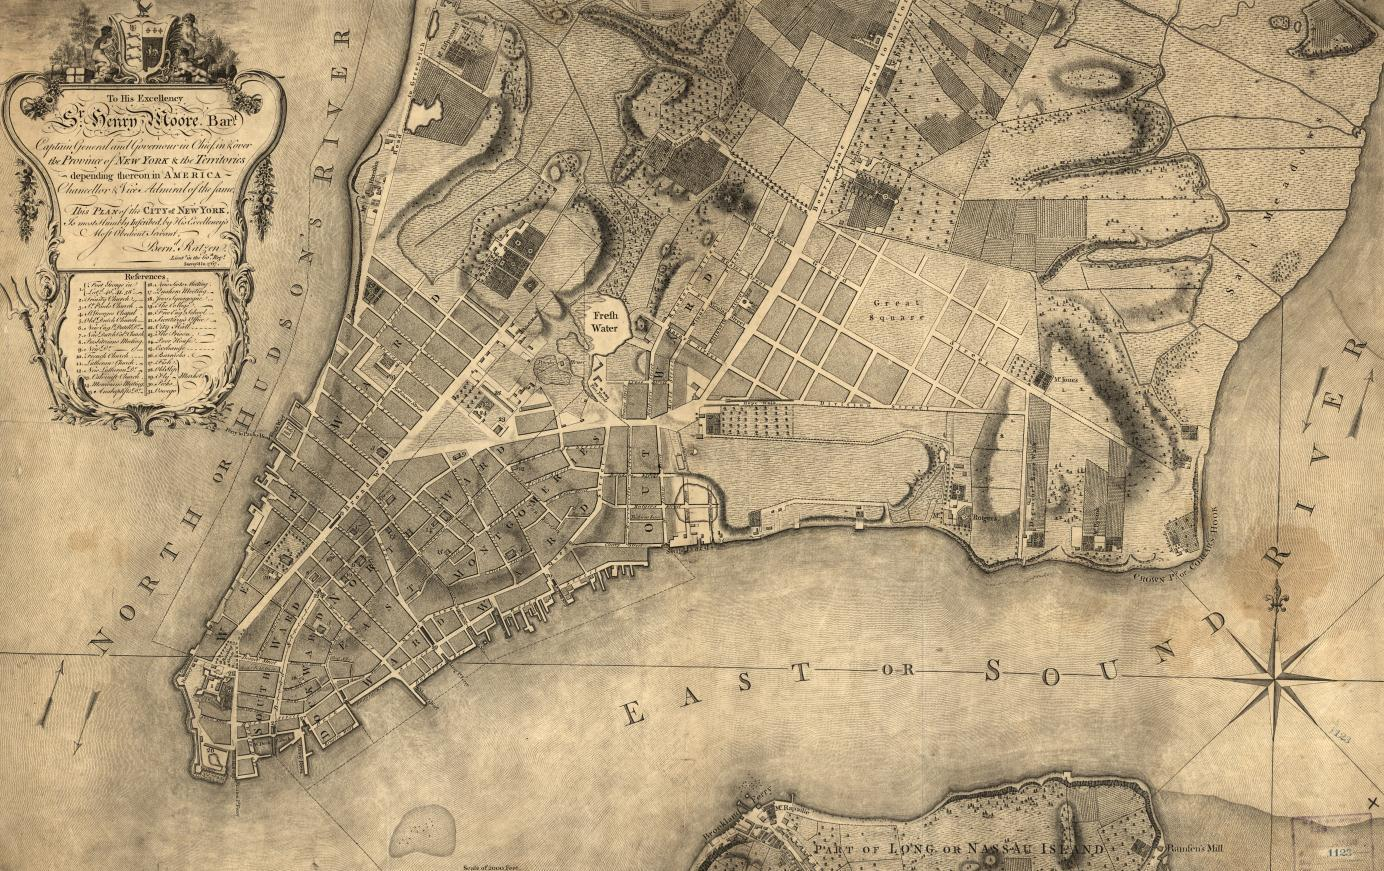 A Map of Revolutionary-era New York City – site where the Culper Spy Ring operated during the American Revolution. (Library of Congress)